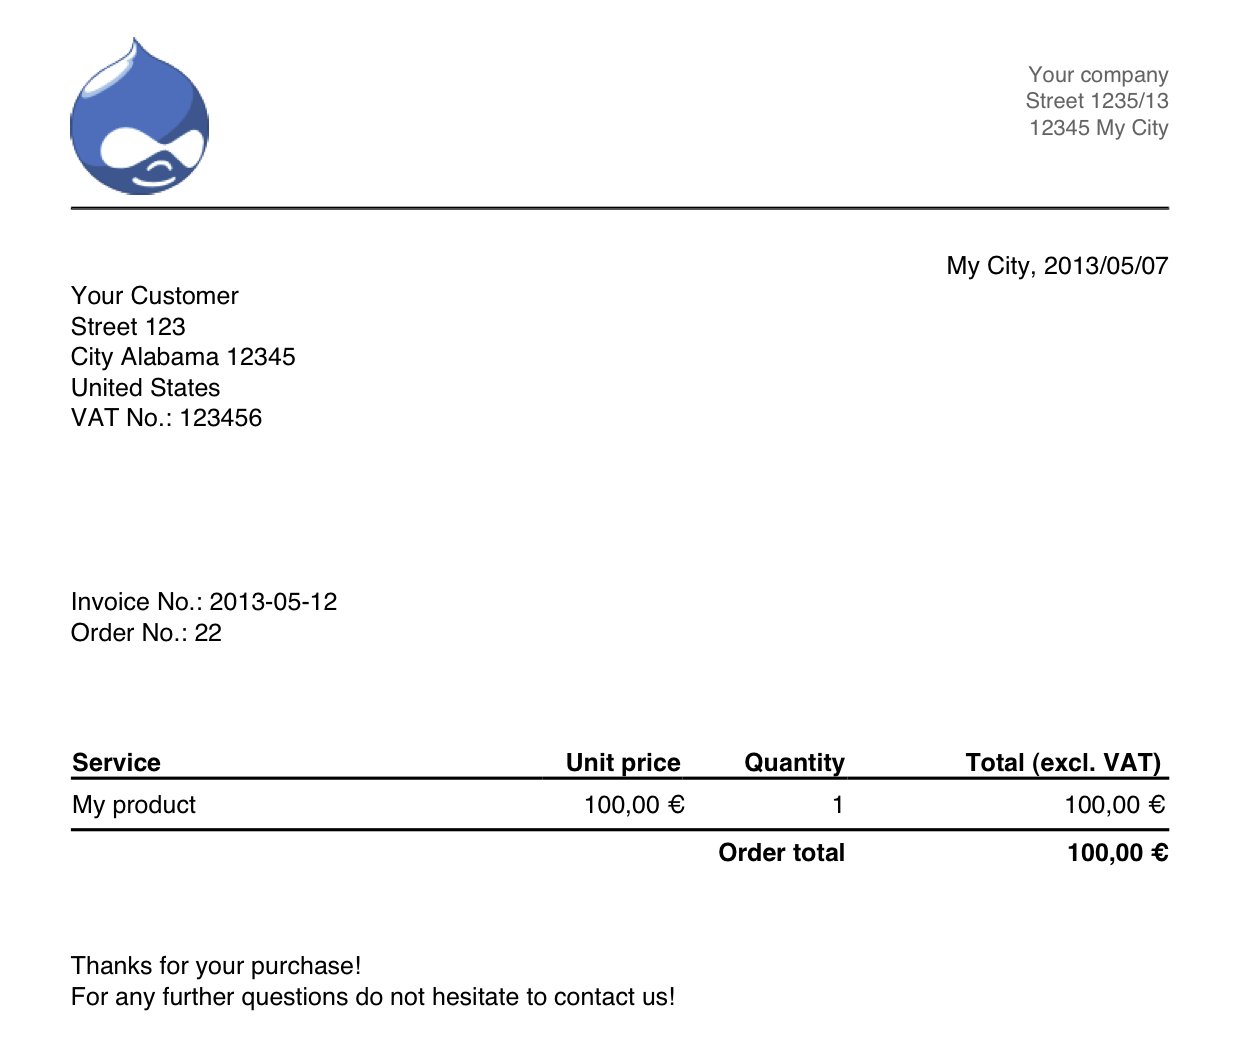 Commerce Billy Drupalorg - Pdf invoice template